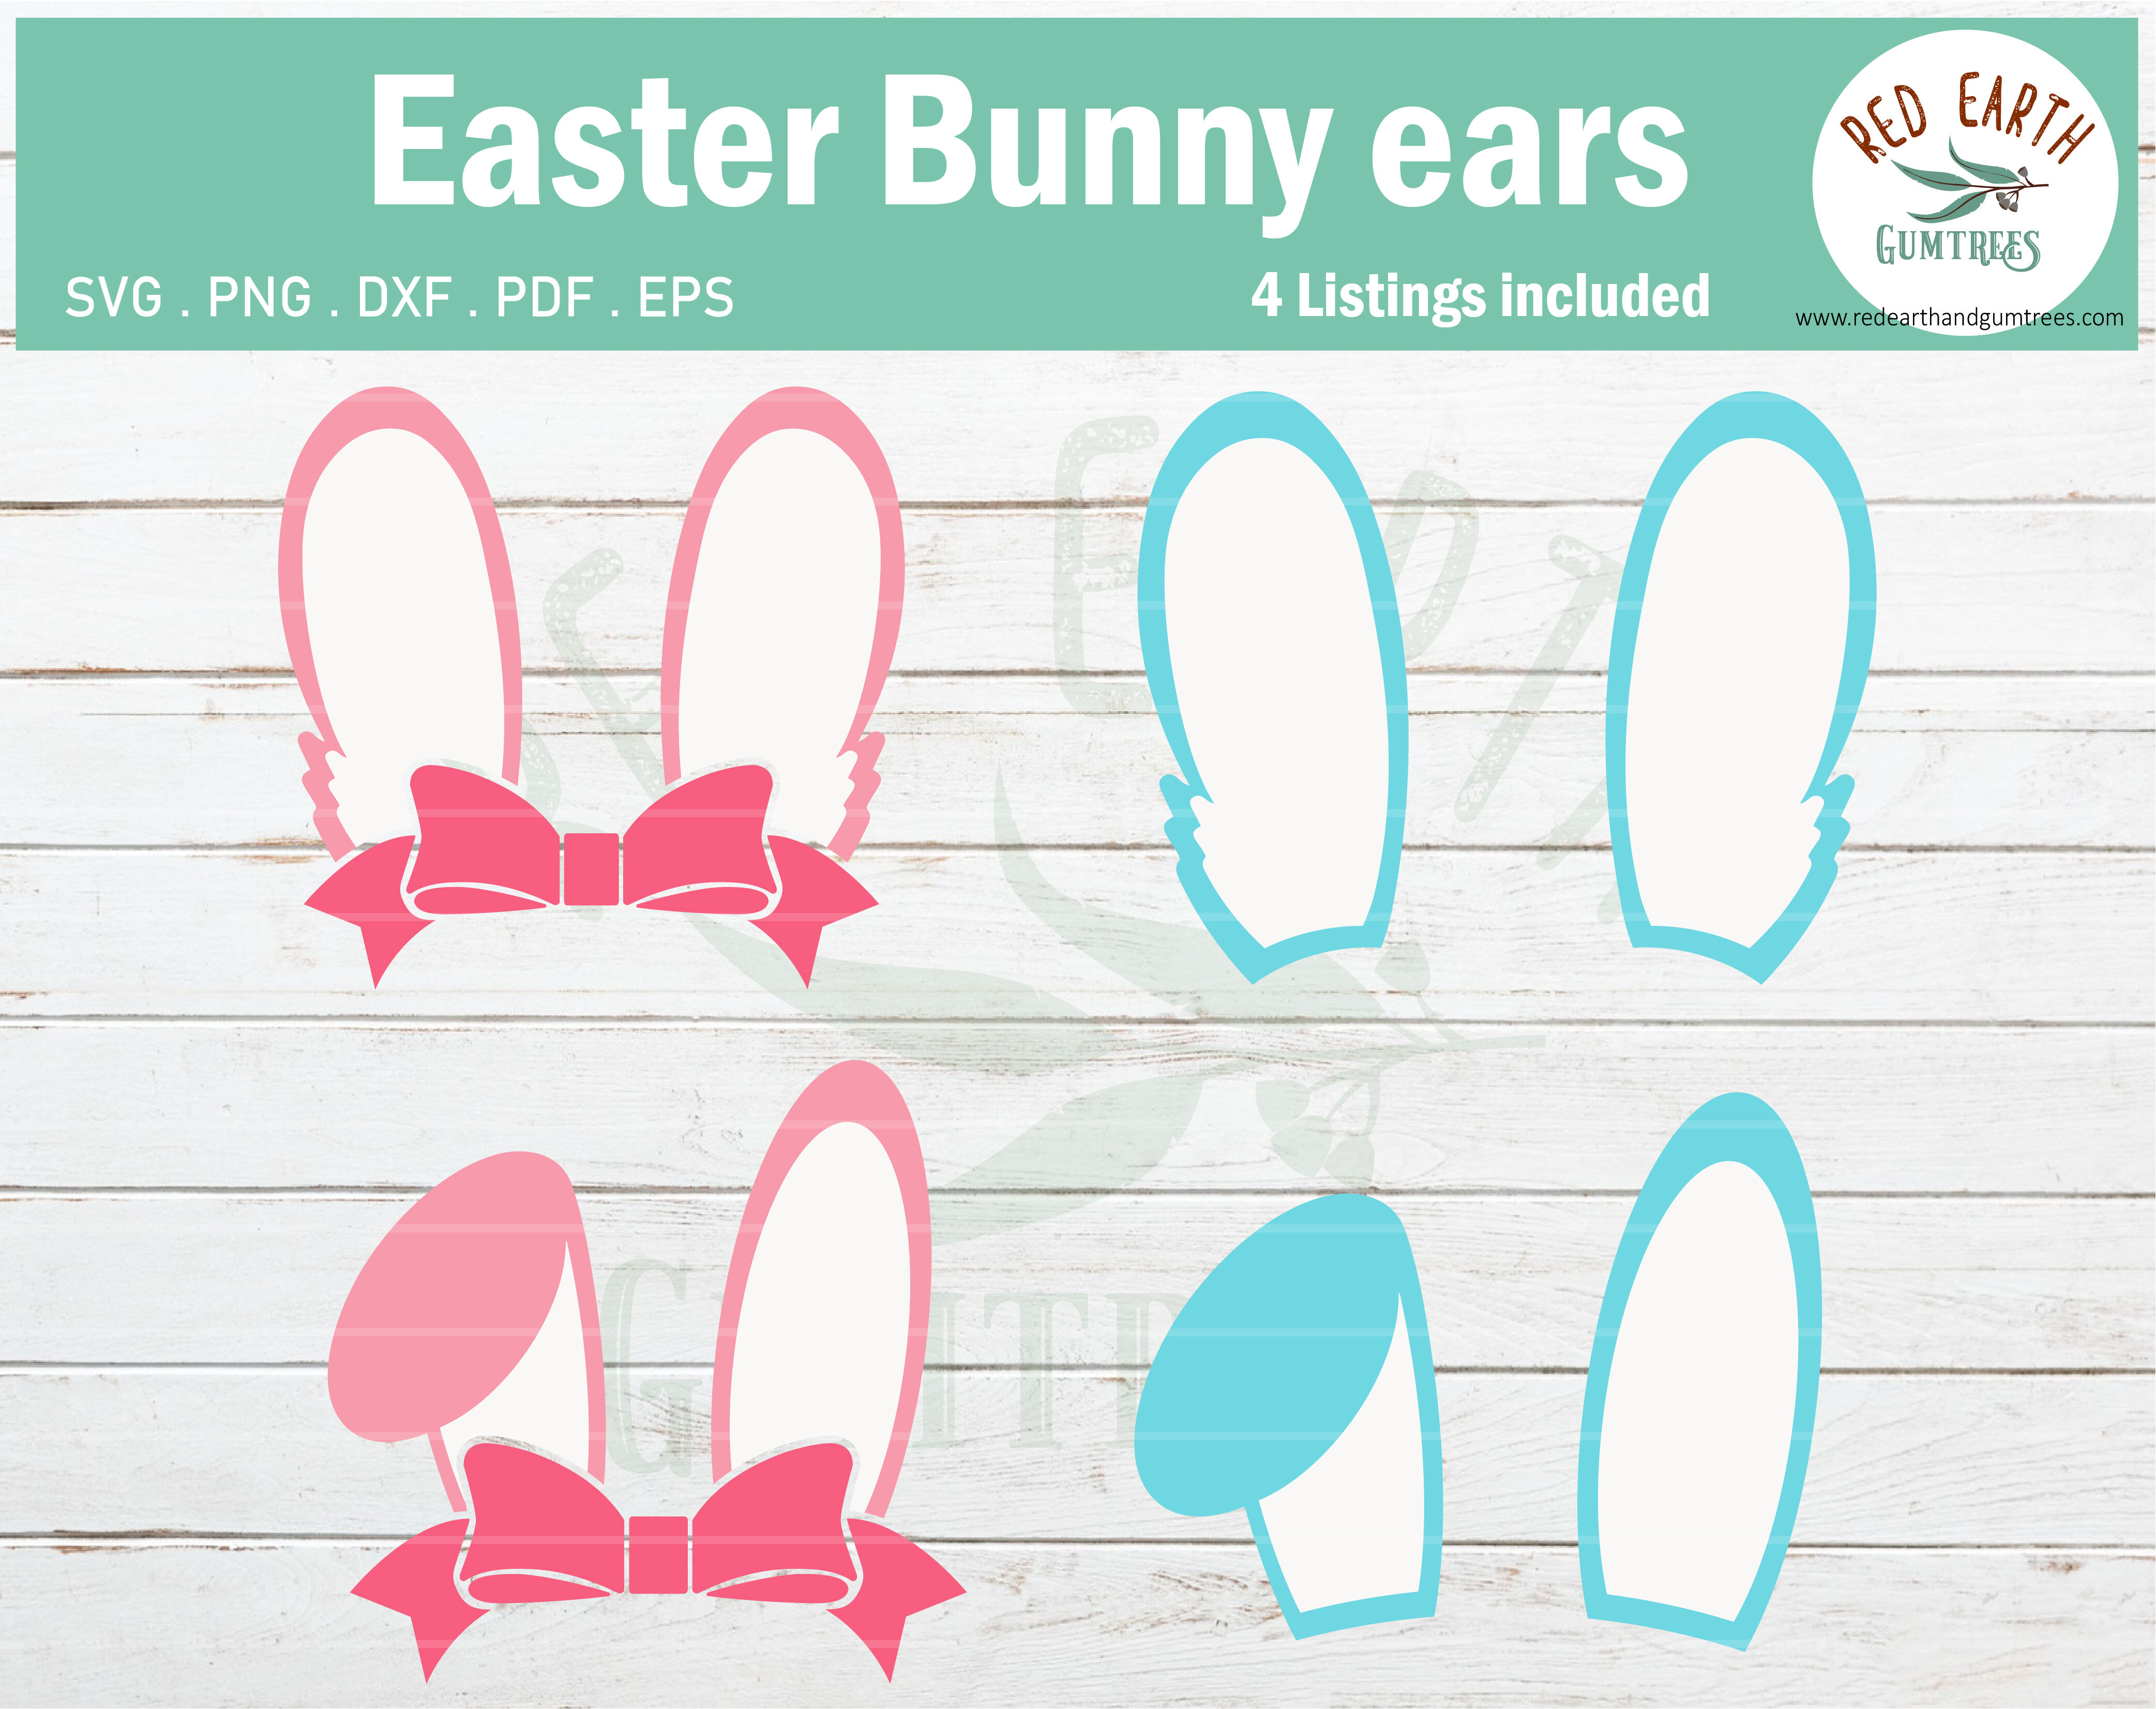 Easter Bunny Ears Svg Easter Rabbit Ears With Bow Svg Png Dxf Eps